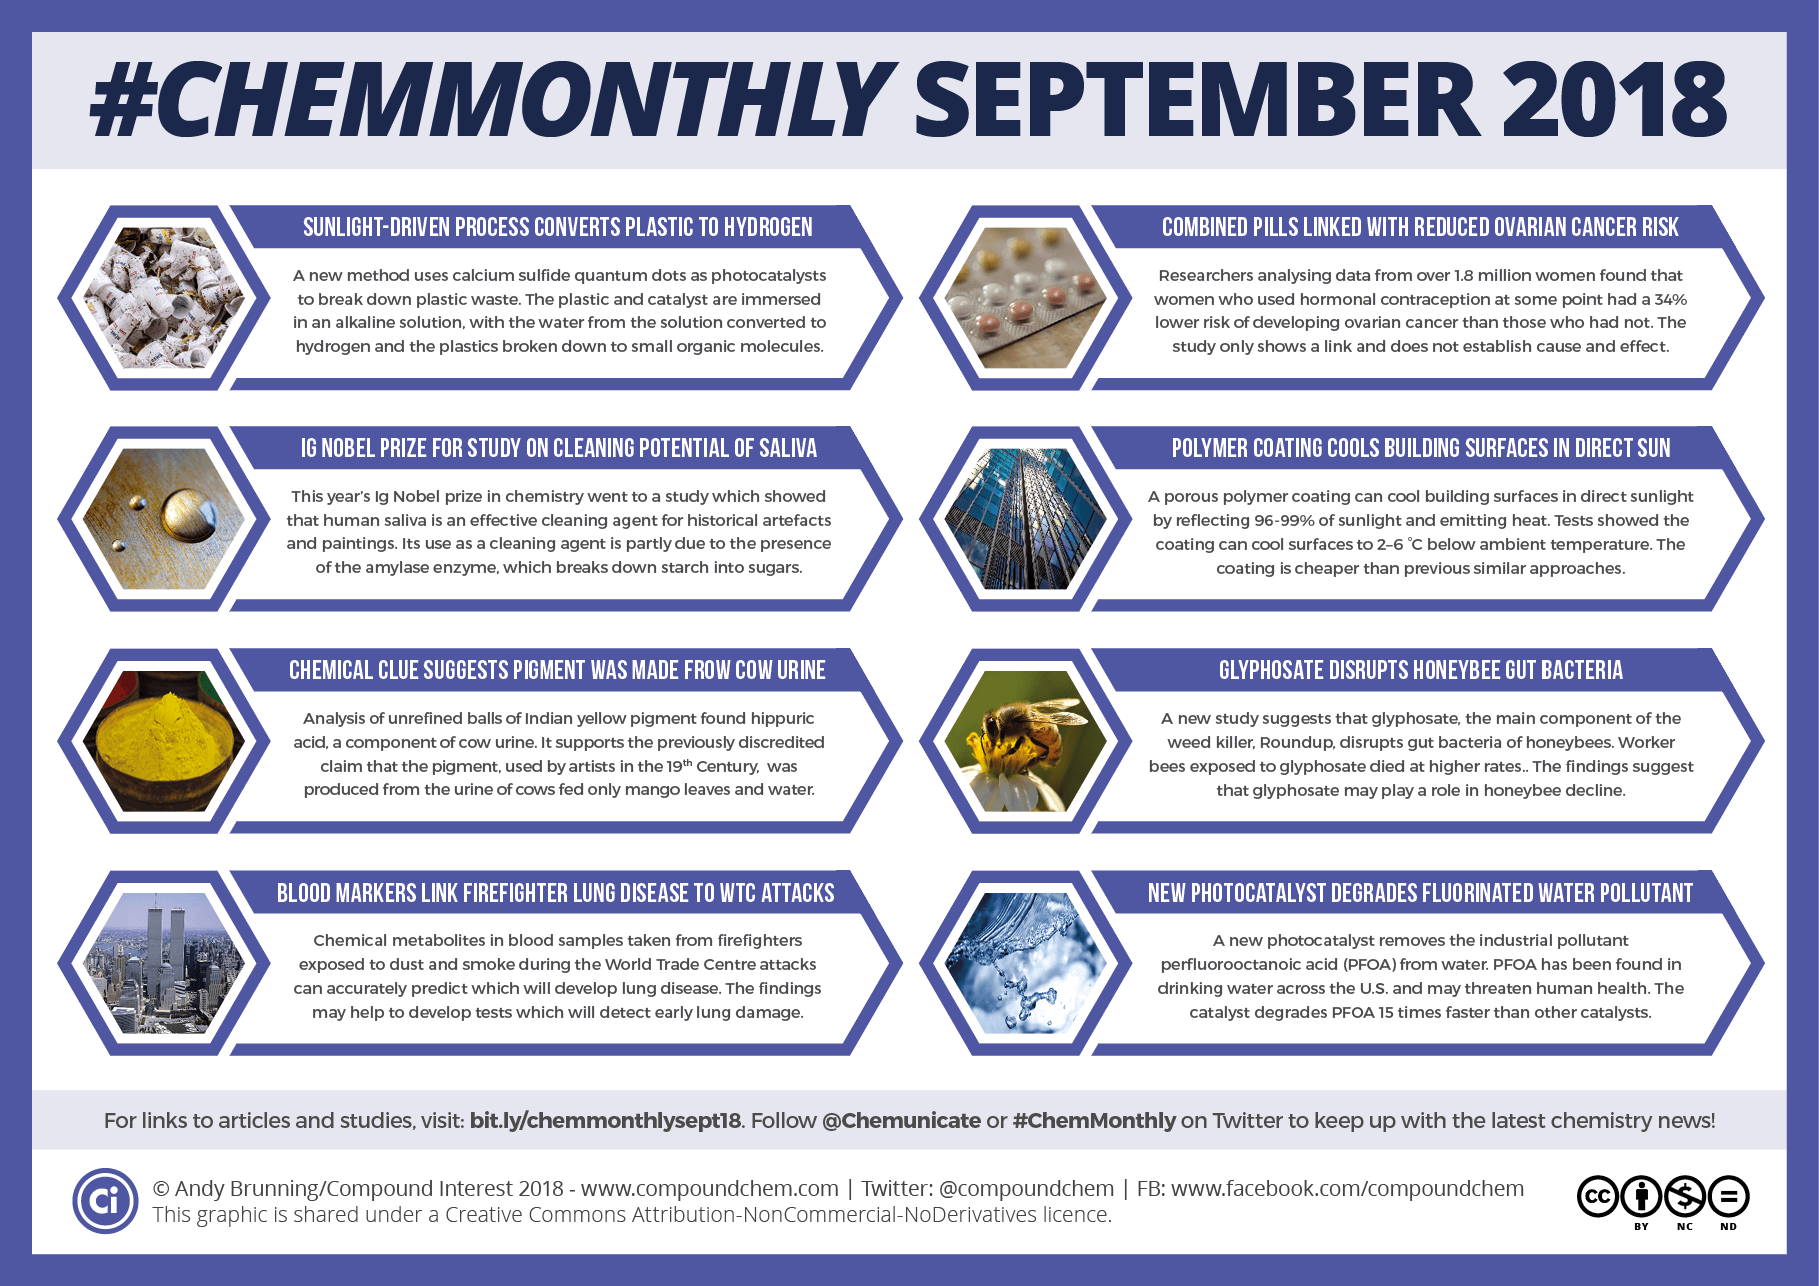 #ChemMonthly September 2018 – Hydrogen from plastic waste, the cleaning potential of saliva, and glyphosate's effect on honeybees